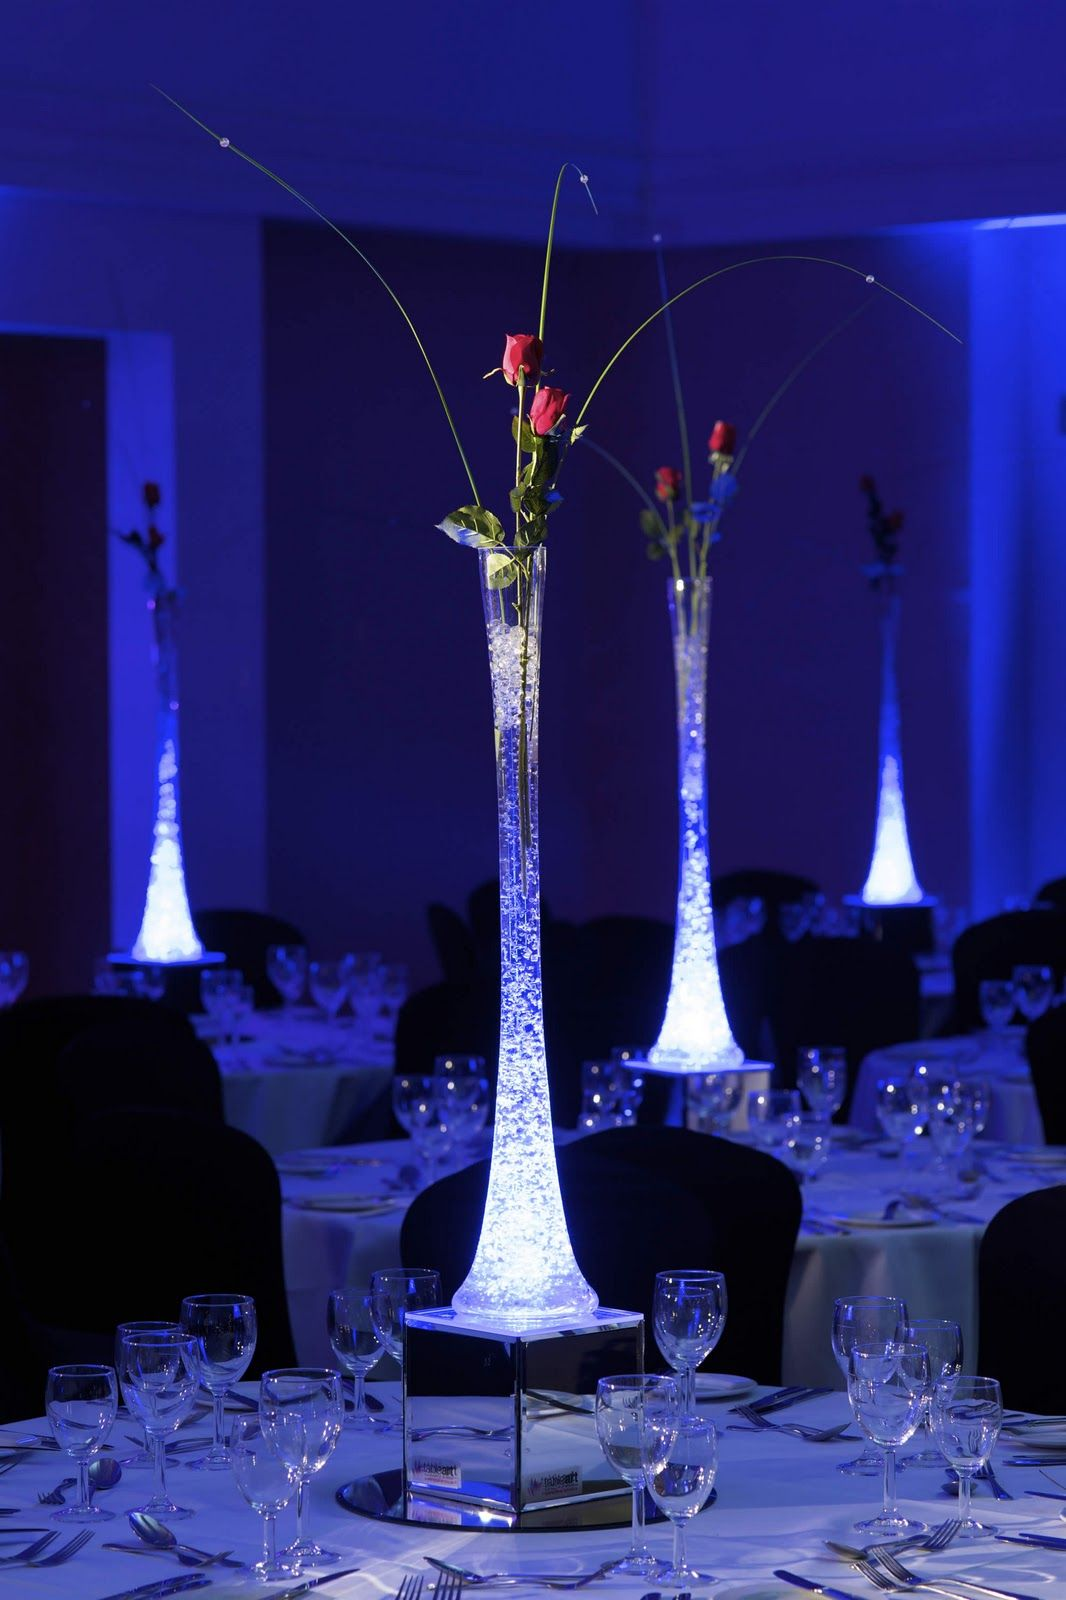 Love This Fire U0026 Ice Centerpiece. Wedding CenterpiecesTable  CenterpiecesCenterpiece IdeasWedding DecorationsCenterpieces With ...